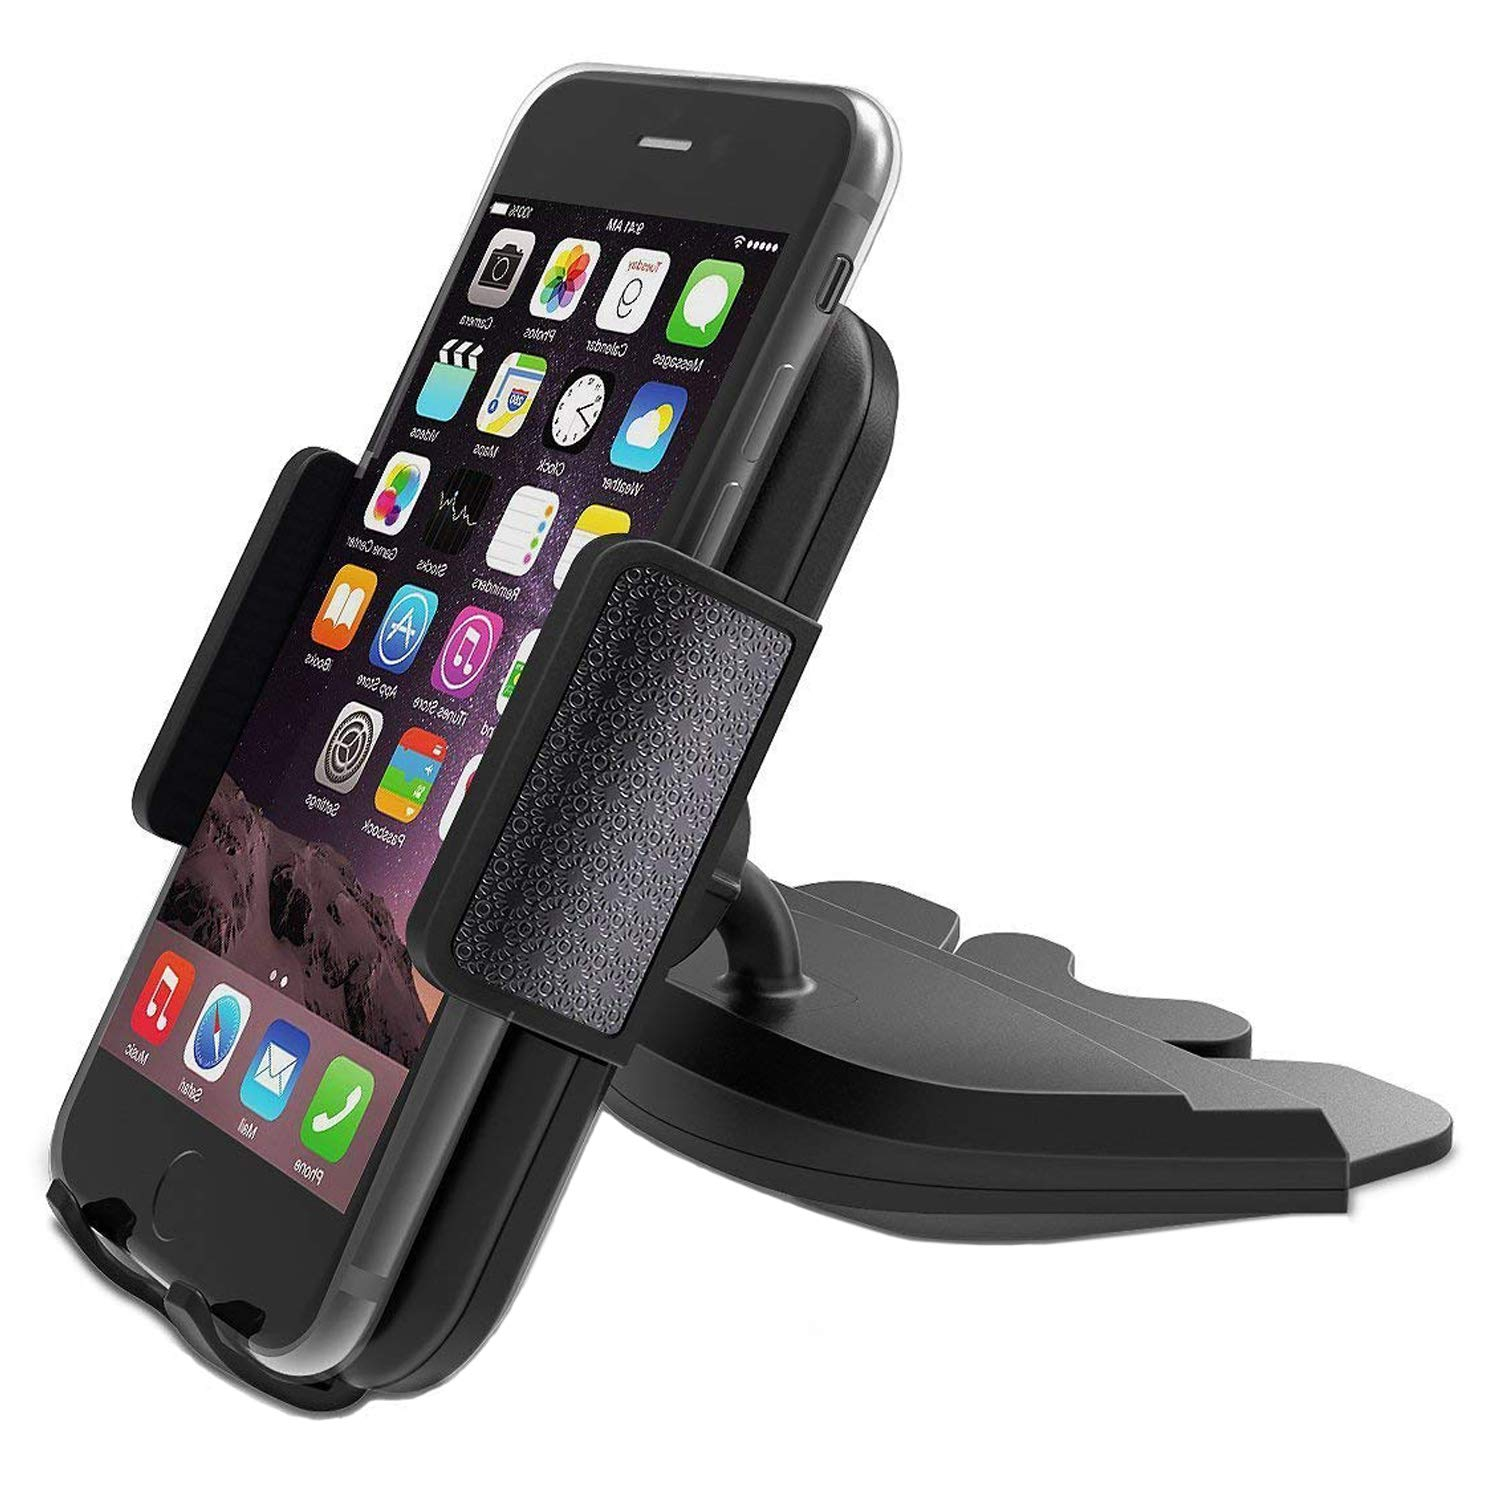 CD Slot Car Phone Mount Holder - Universal CD Slot Phone Holder for Car Compatible iPhone X 8 Plus 7 Plus 6s 6 Plus 5S Samsung Galaxy S5 S6 S7 S8 S9 S9+ Google Huawei HTC etc - Black